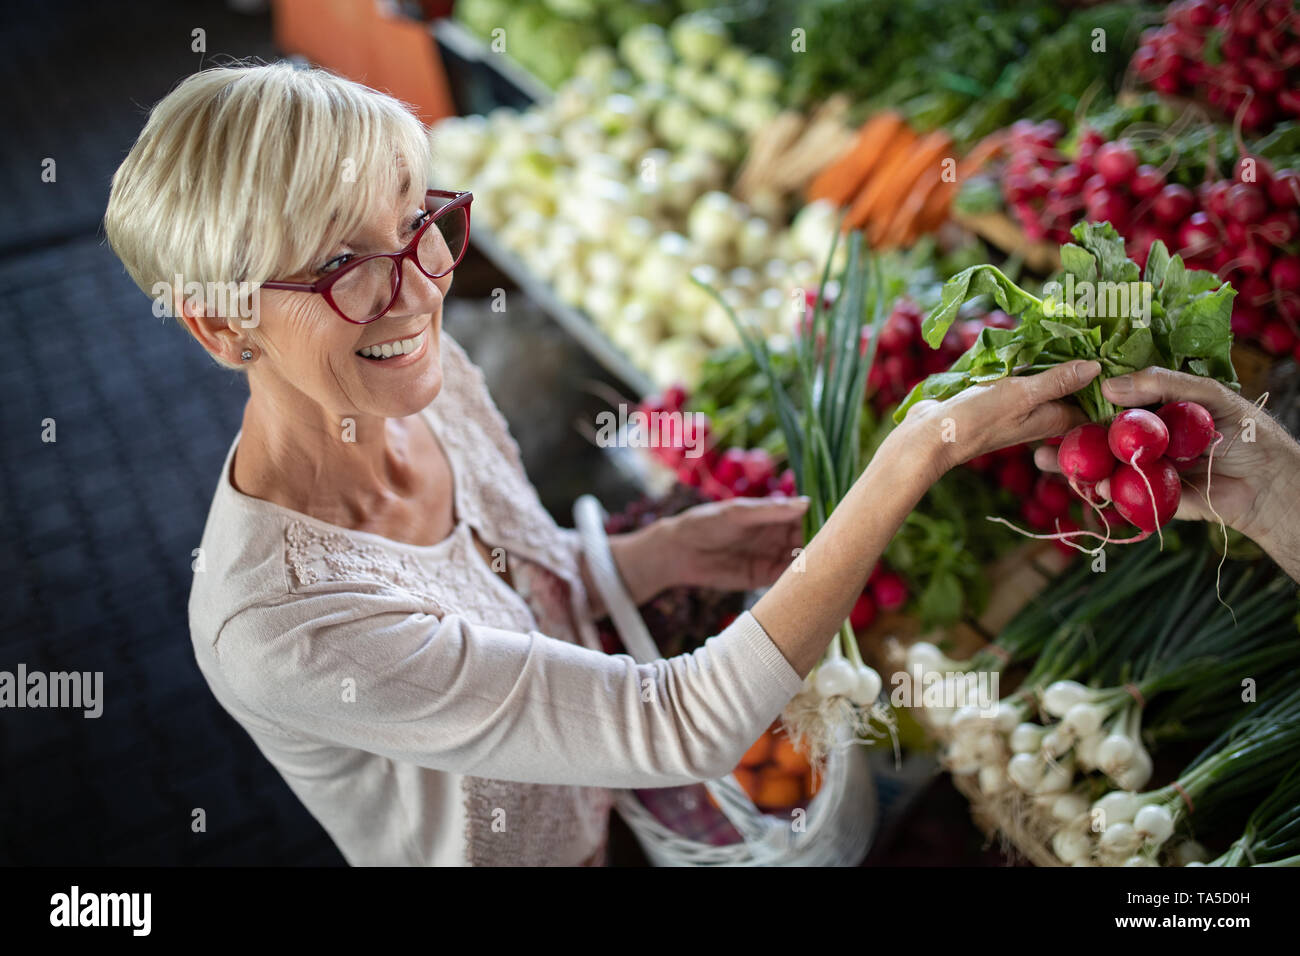 Senior woman buying vegetables at the green market. - Stock Image